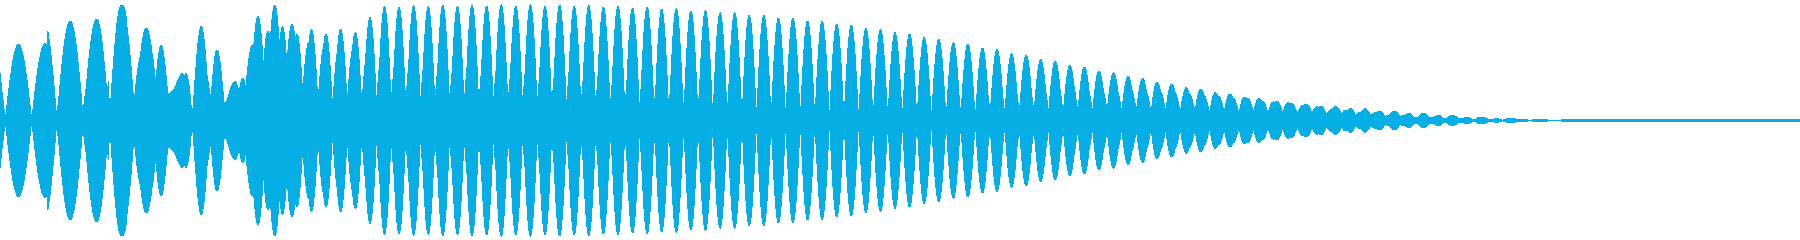 Puong (a gentle sound without a round treogle)'s reproduced waveform